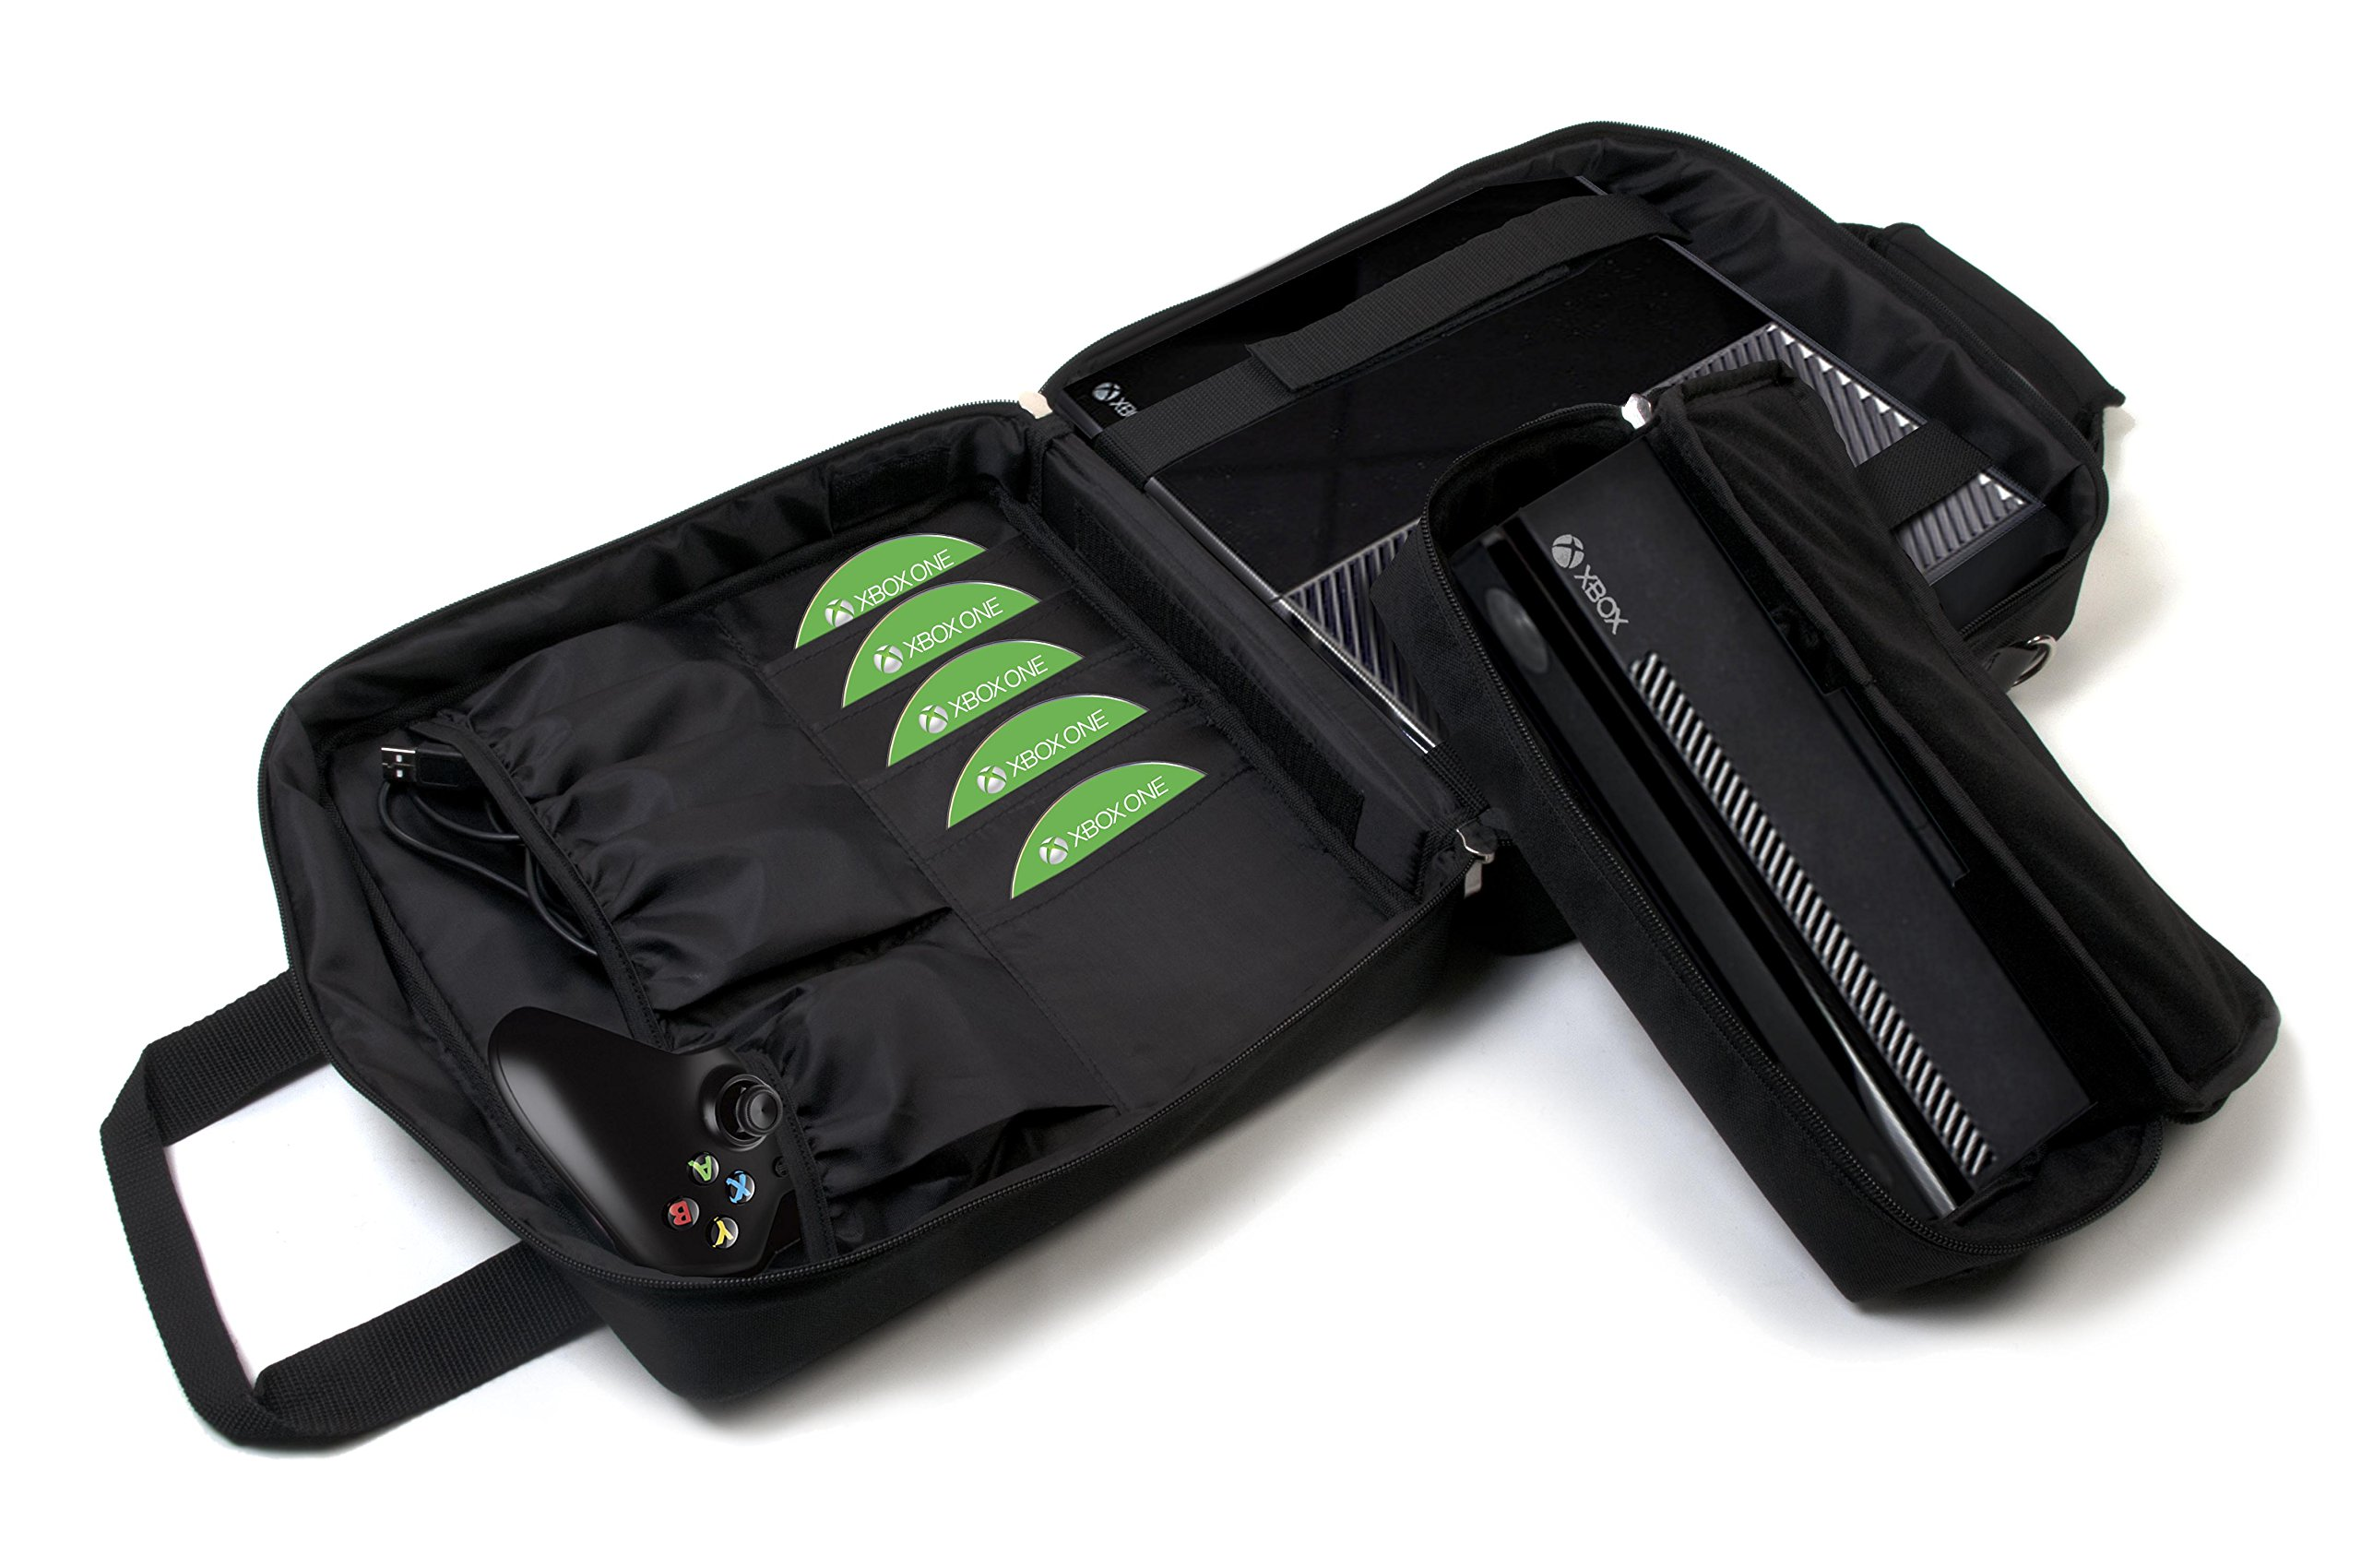 CTA Digital Multi-Function Carrying Case for Xbox One XB1-MFC by CTA Digital (Image #3)